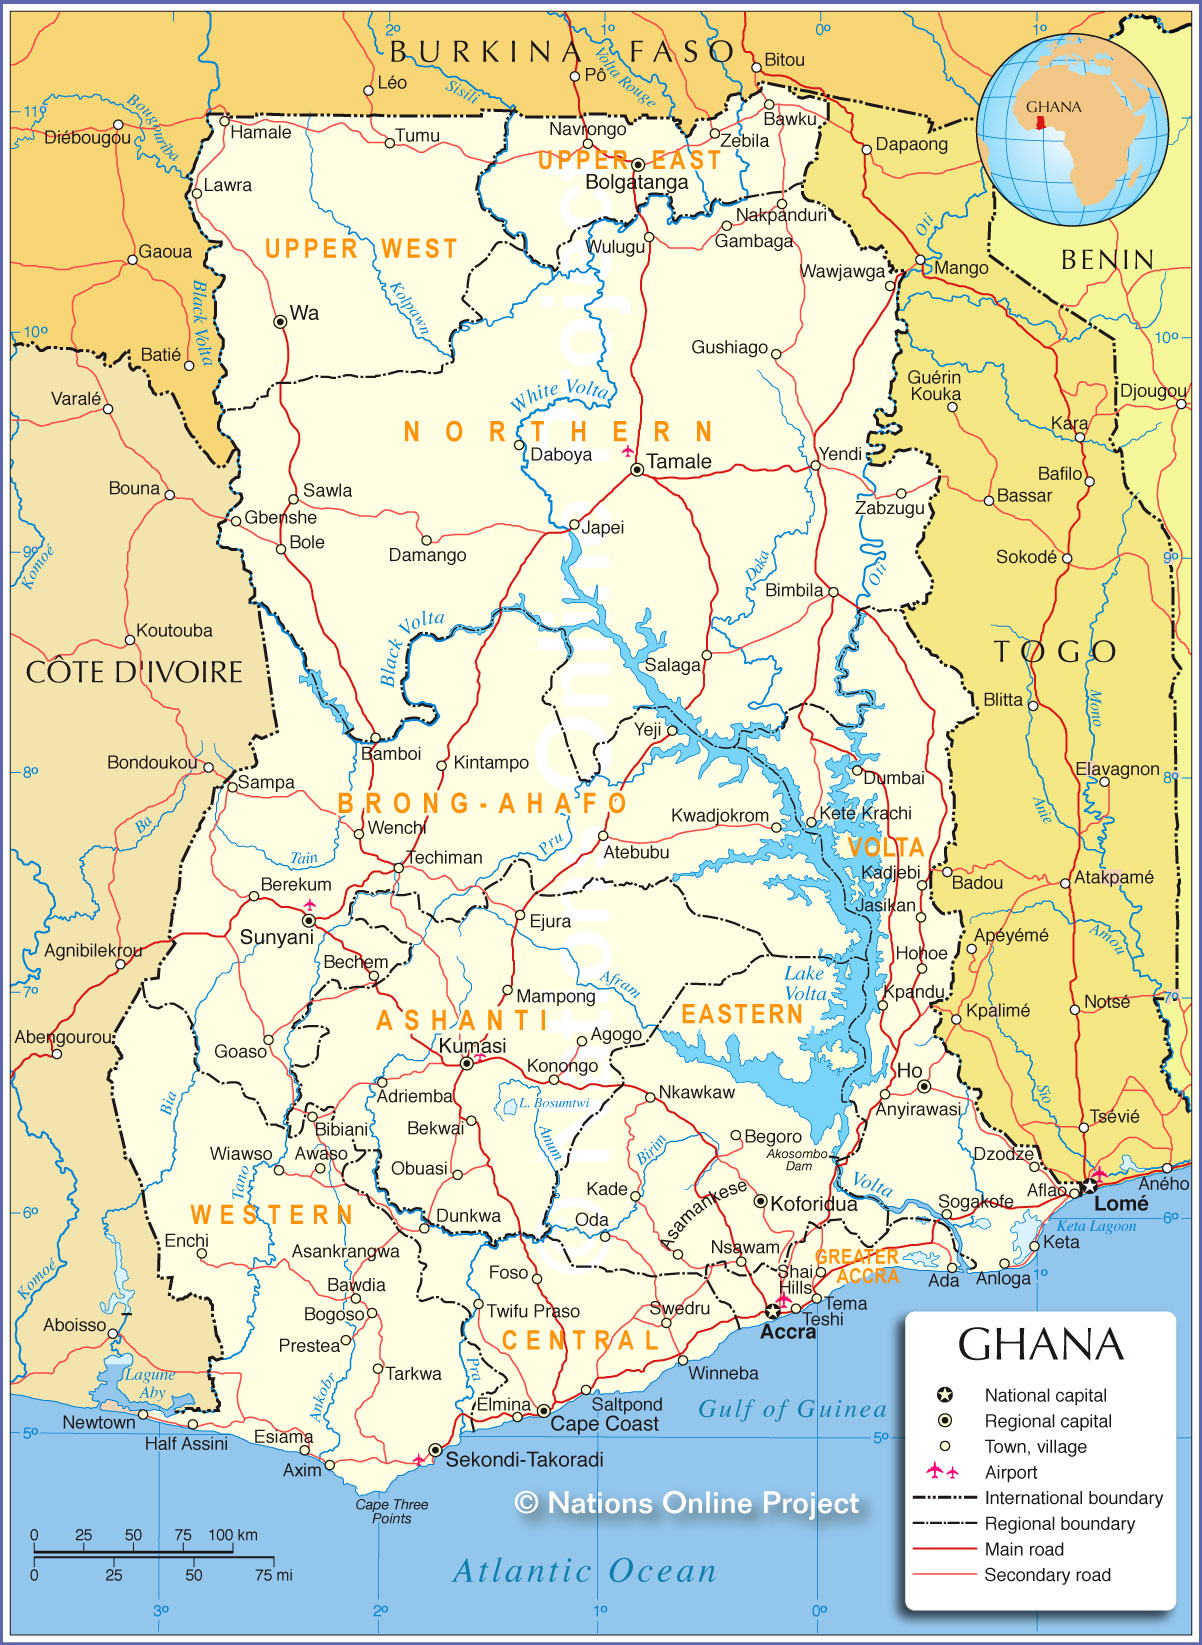 Lake Volta Africa Map.Political Map Of Ghana Nations Online Project